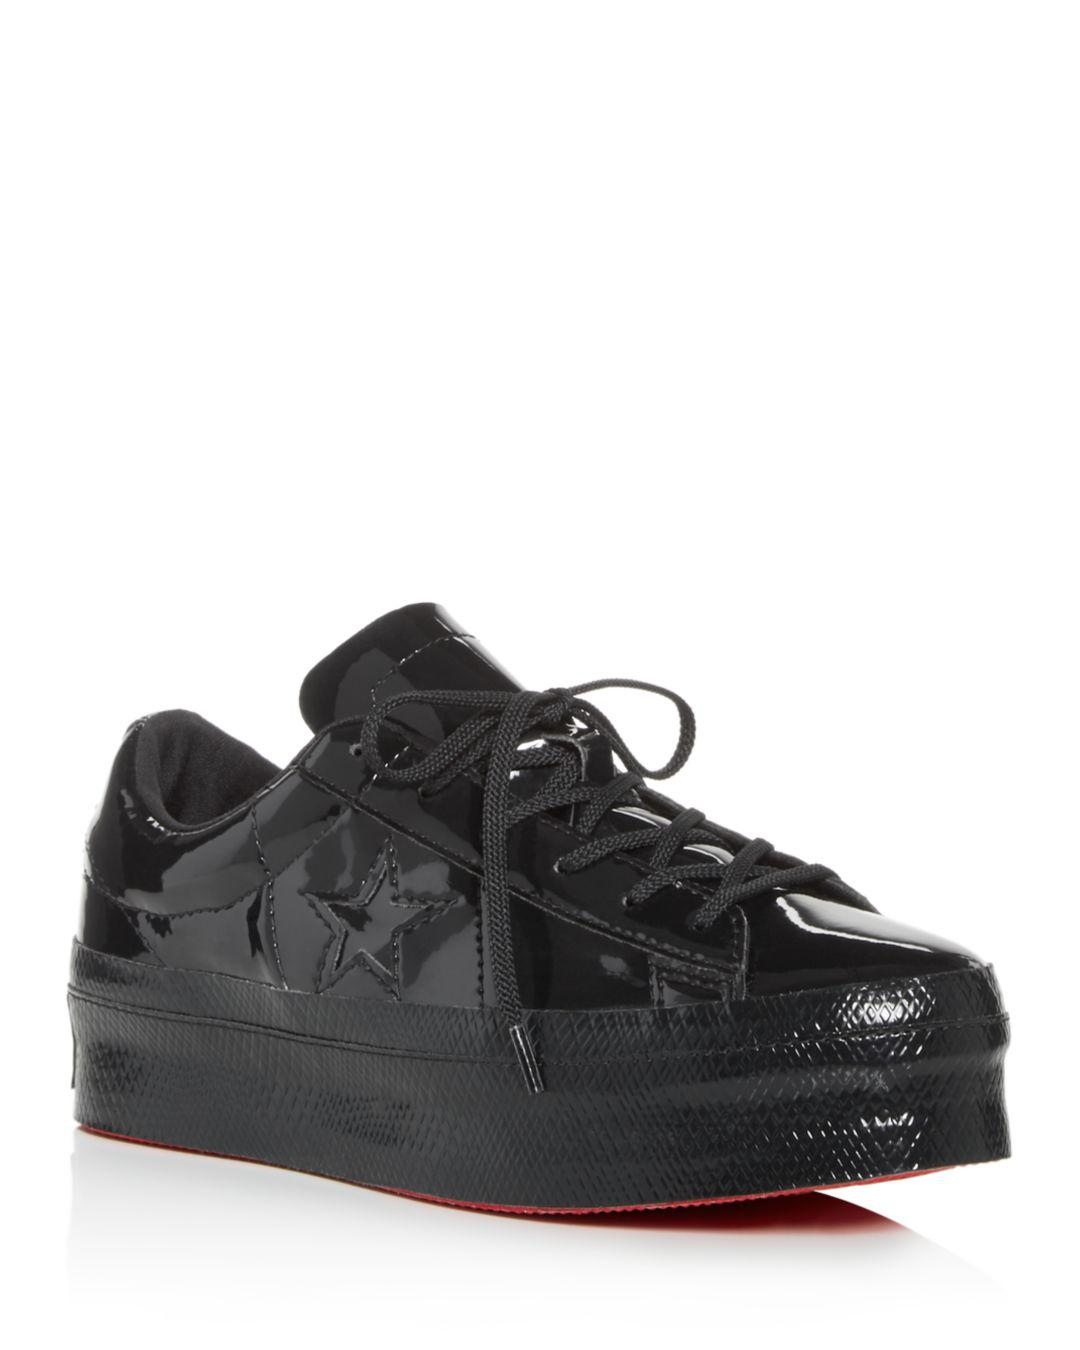 dd0e8249332d73 Converse Women s One Star Lace-up Platform Sneakers in Black - Lyst